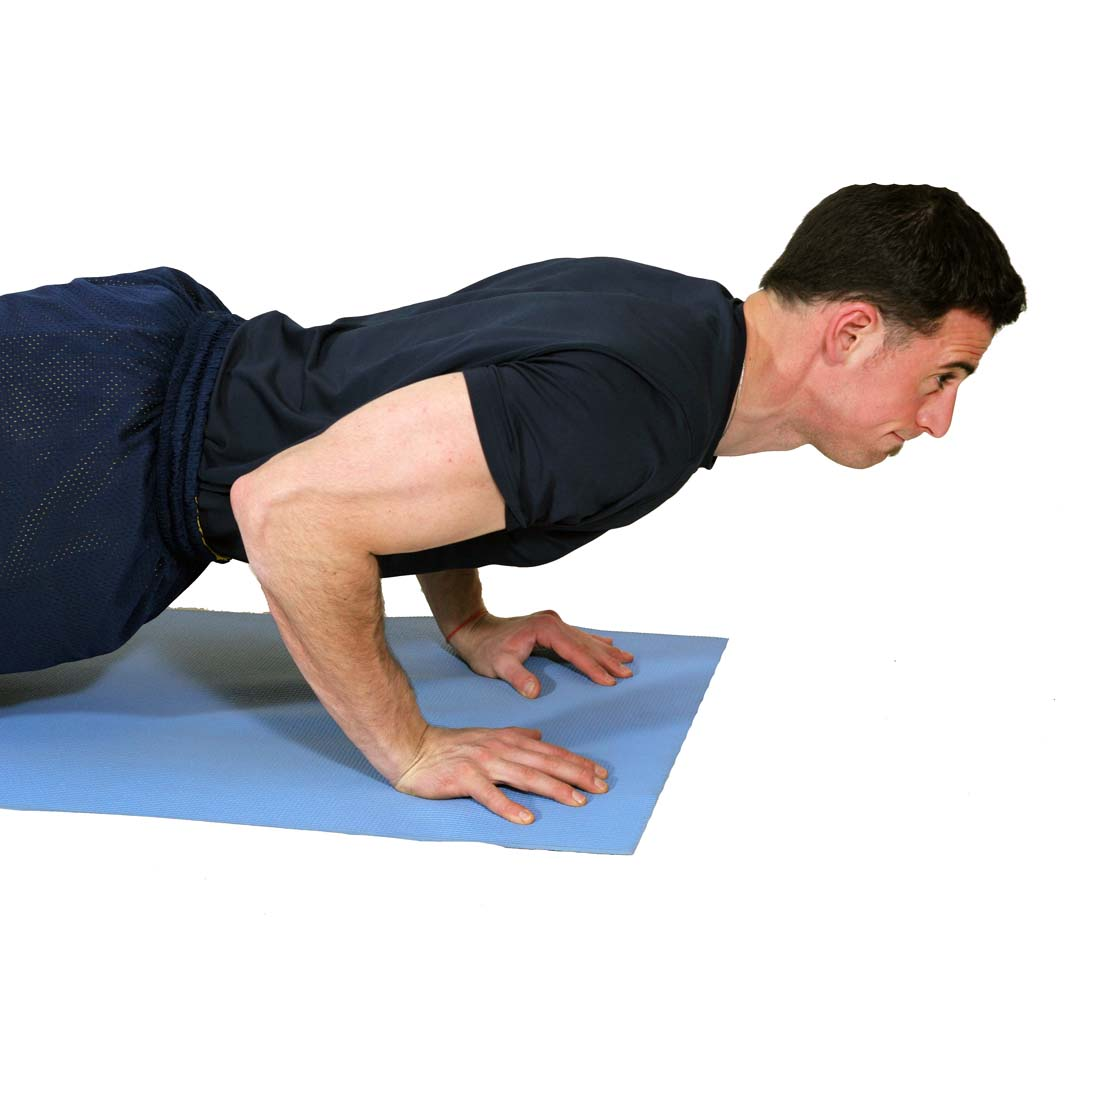 Close Grip Push-Up Press